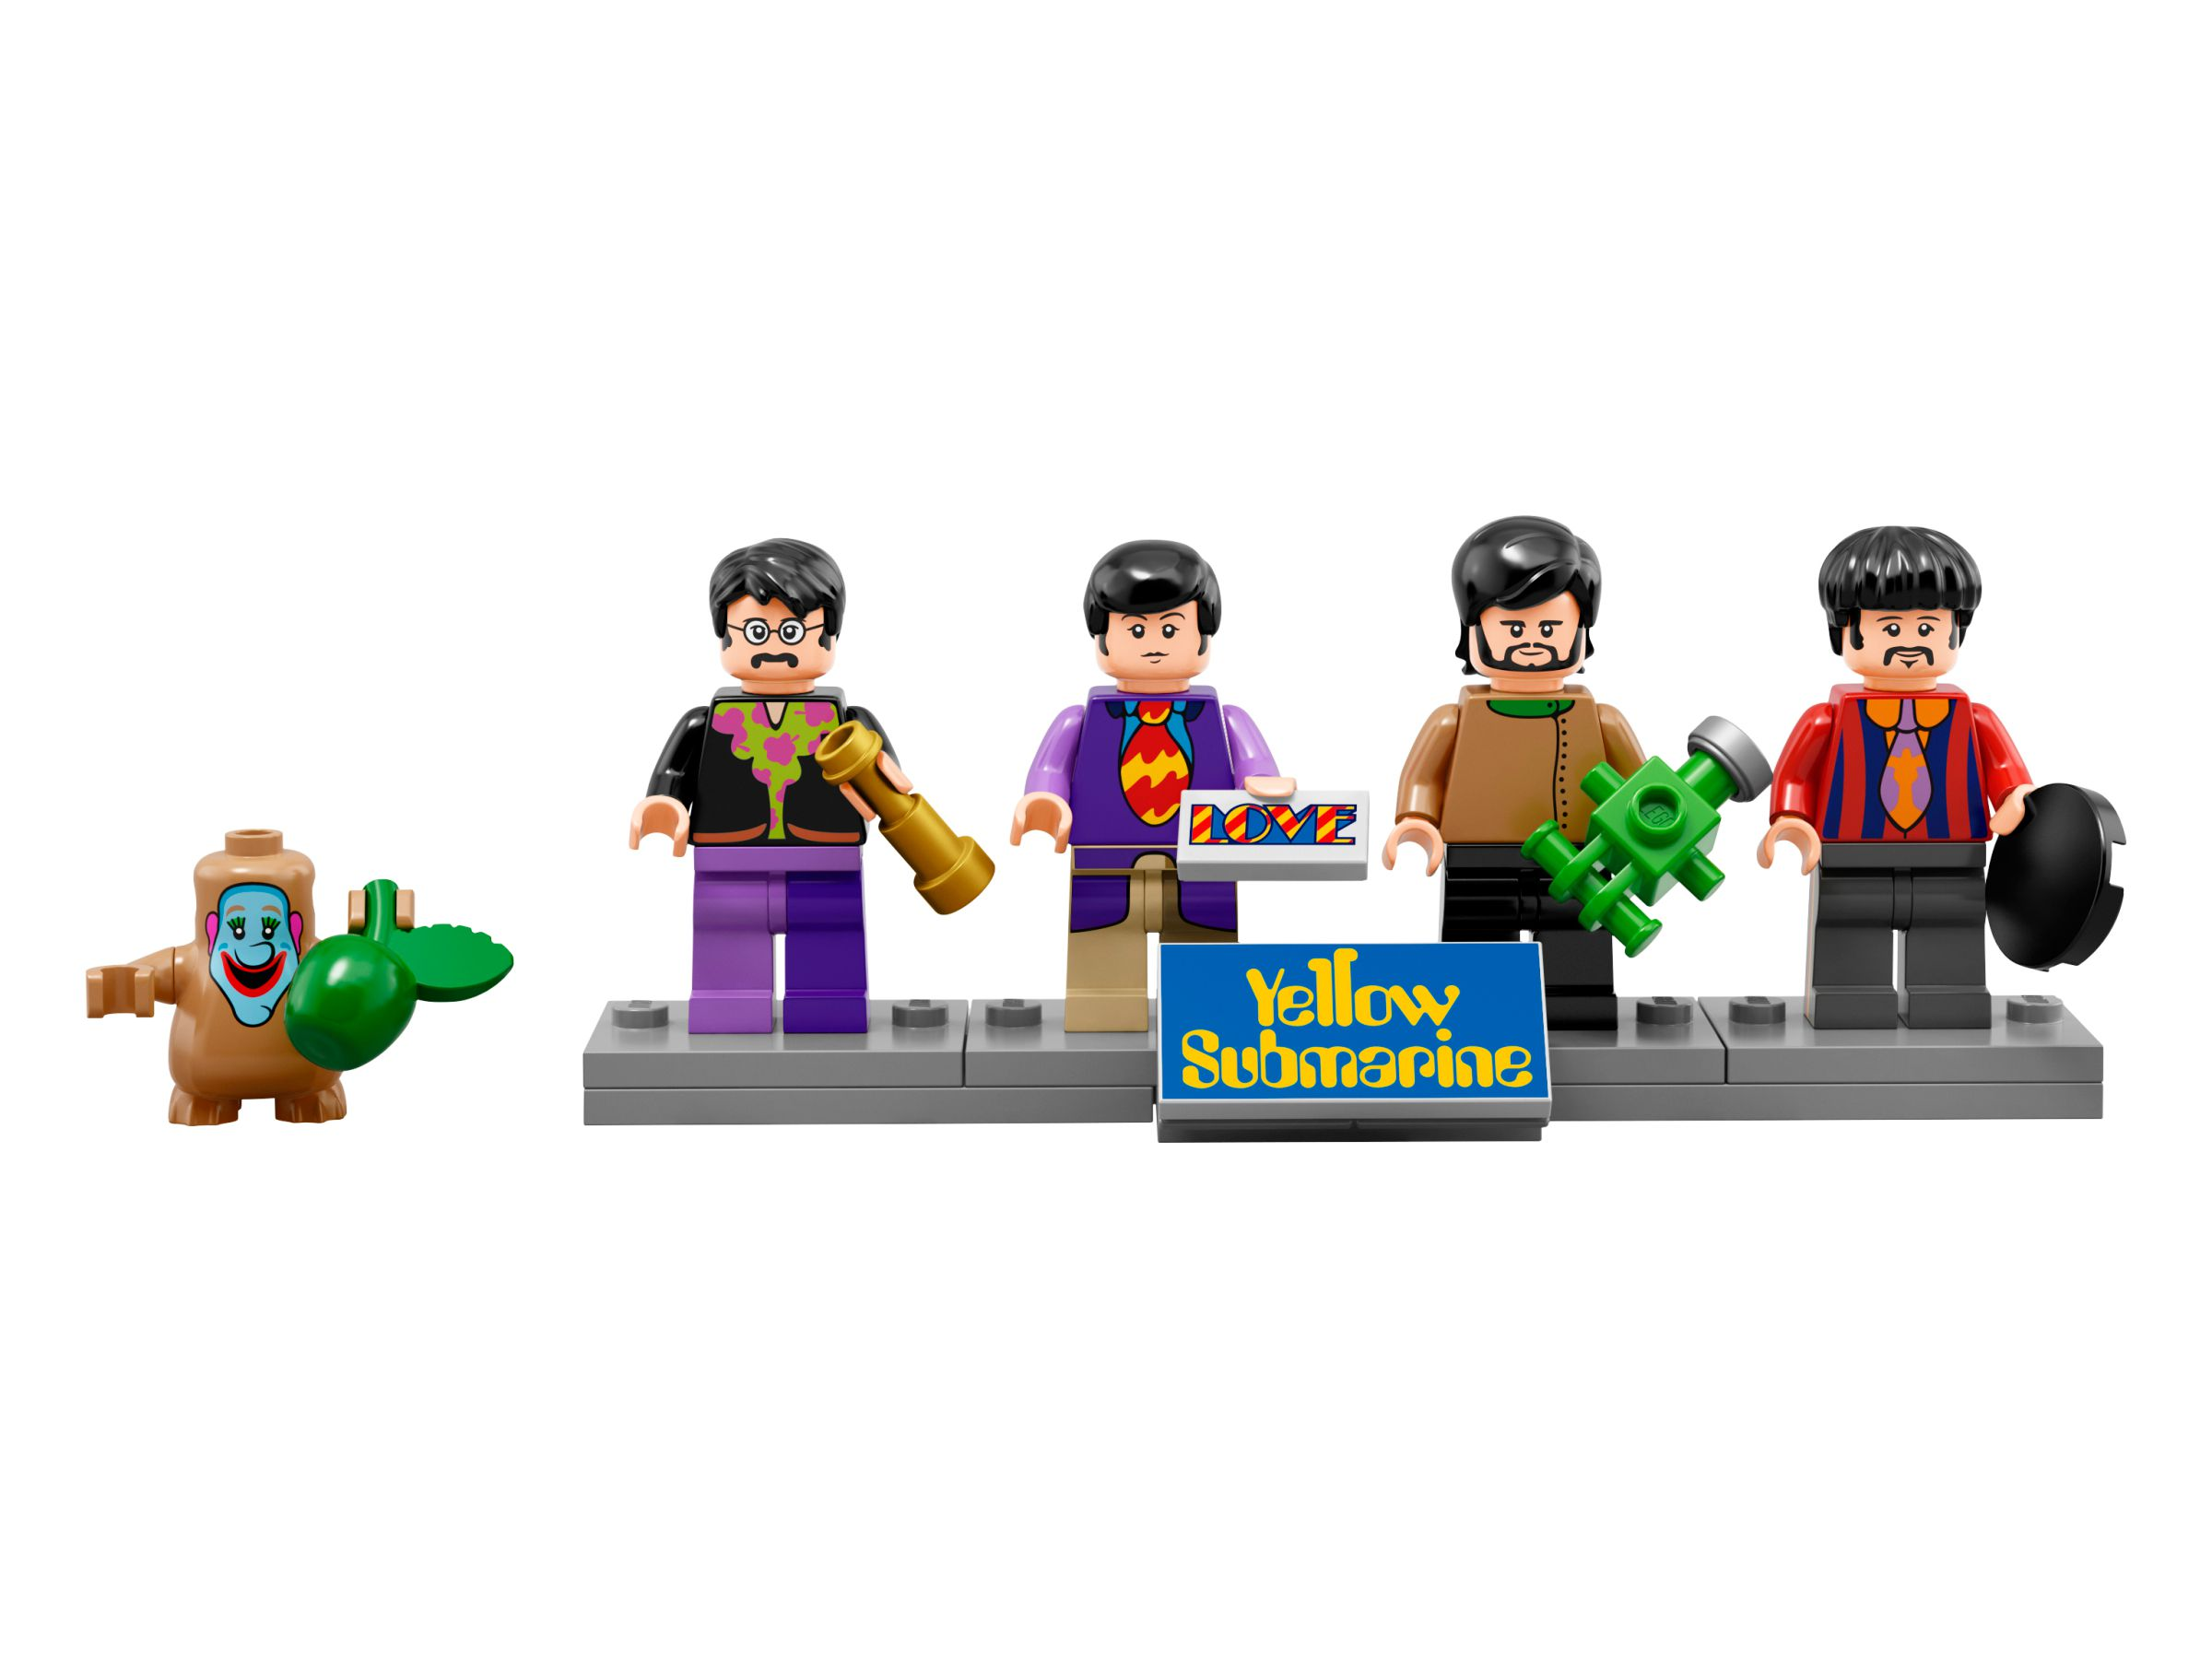 LEGO Ideas 21306 Yellow Submarine LEGO_21306_alt4.jpg